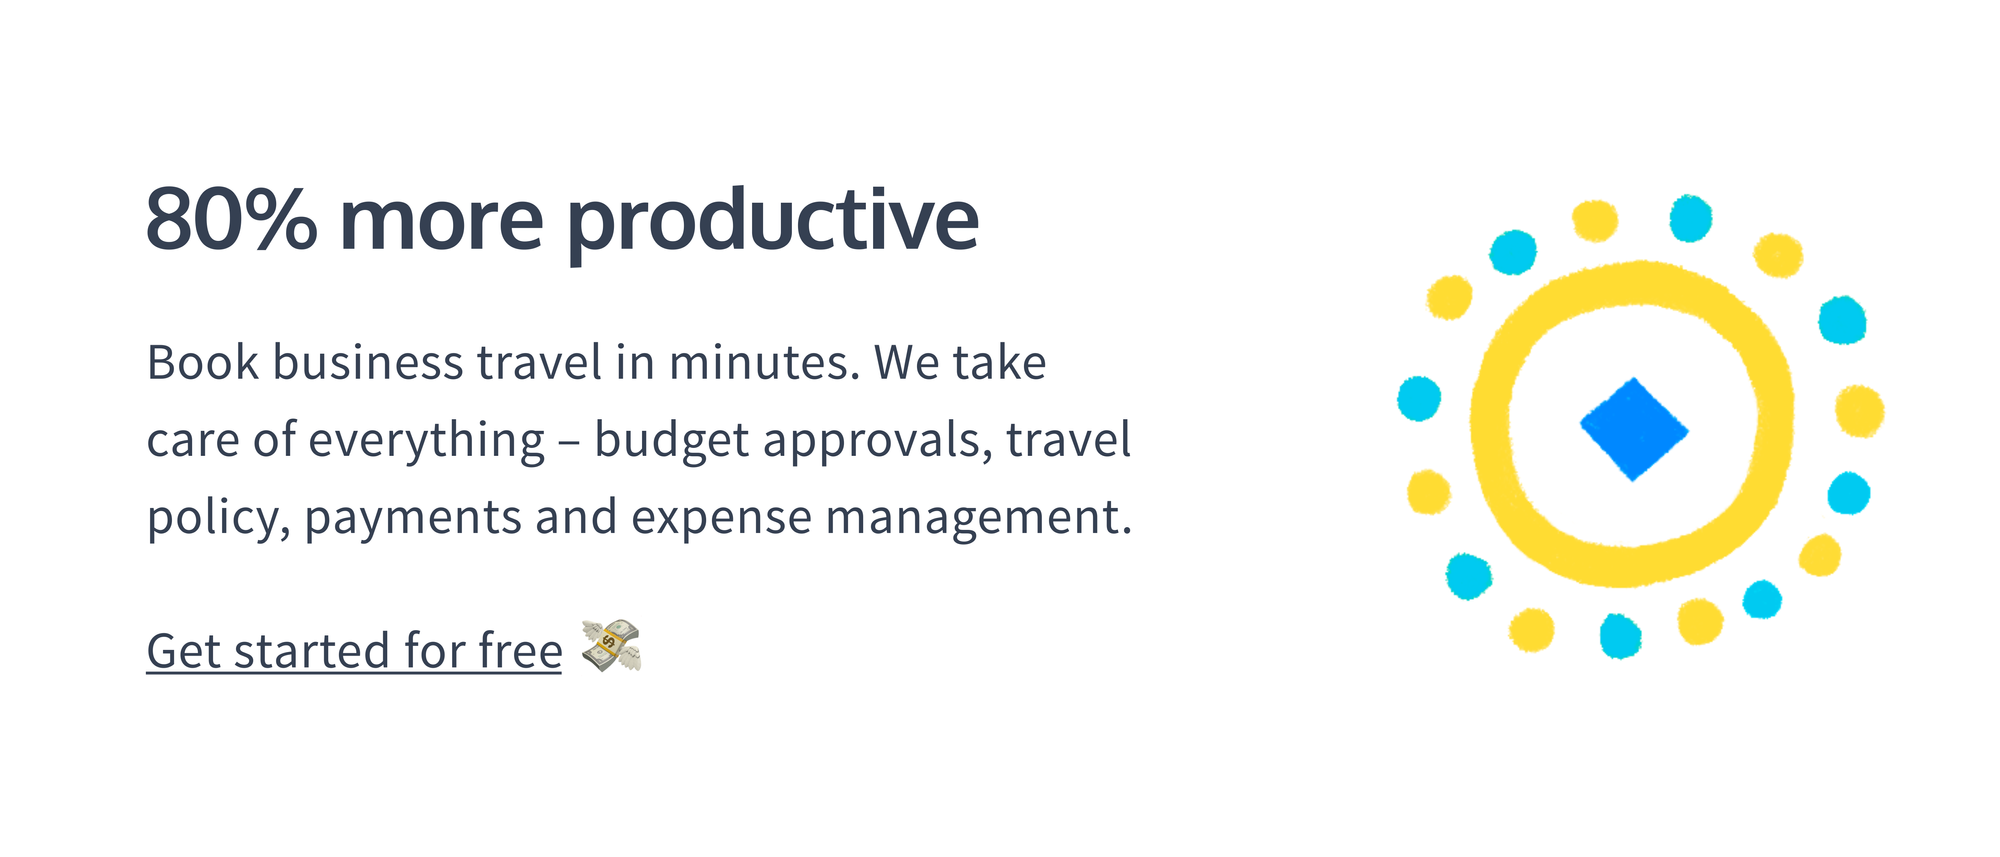 travelstop-more-productive